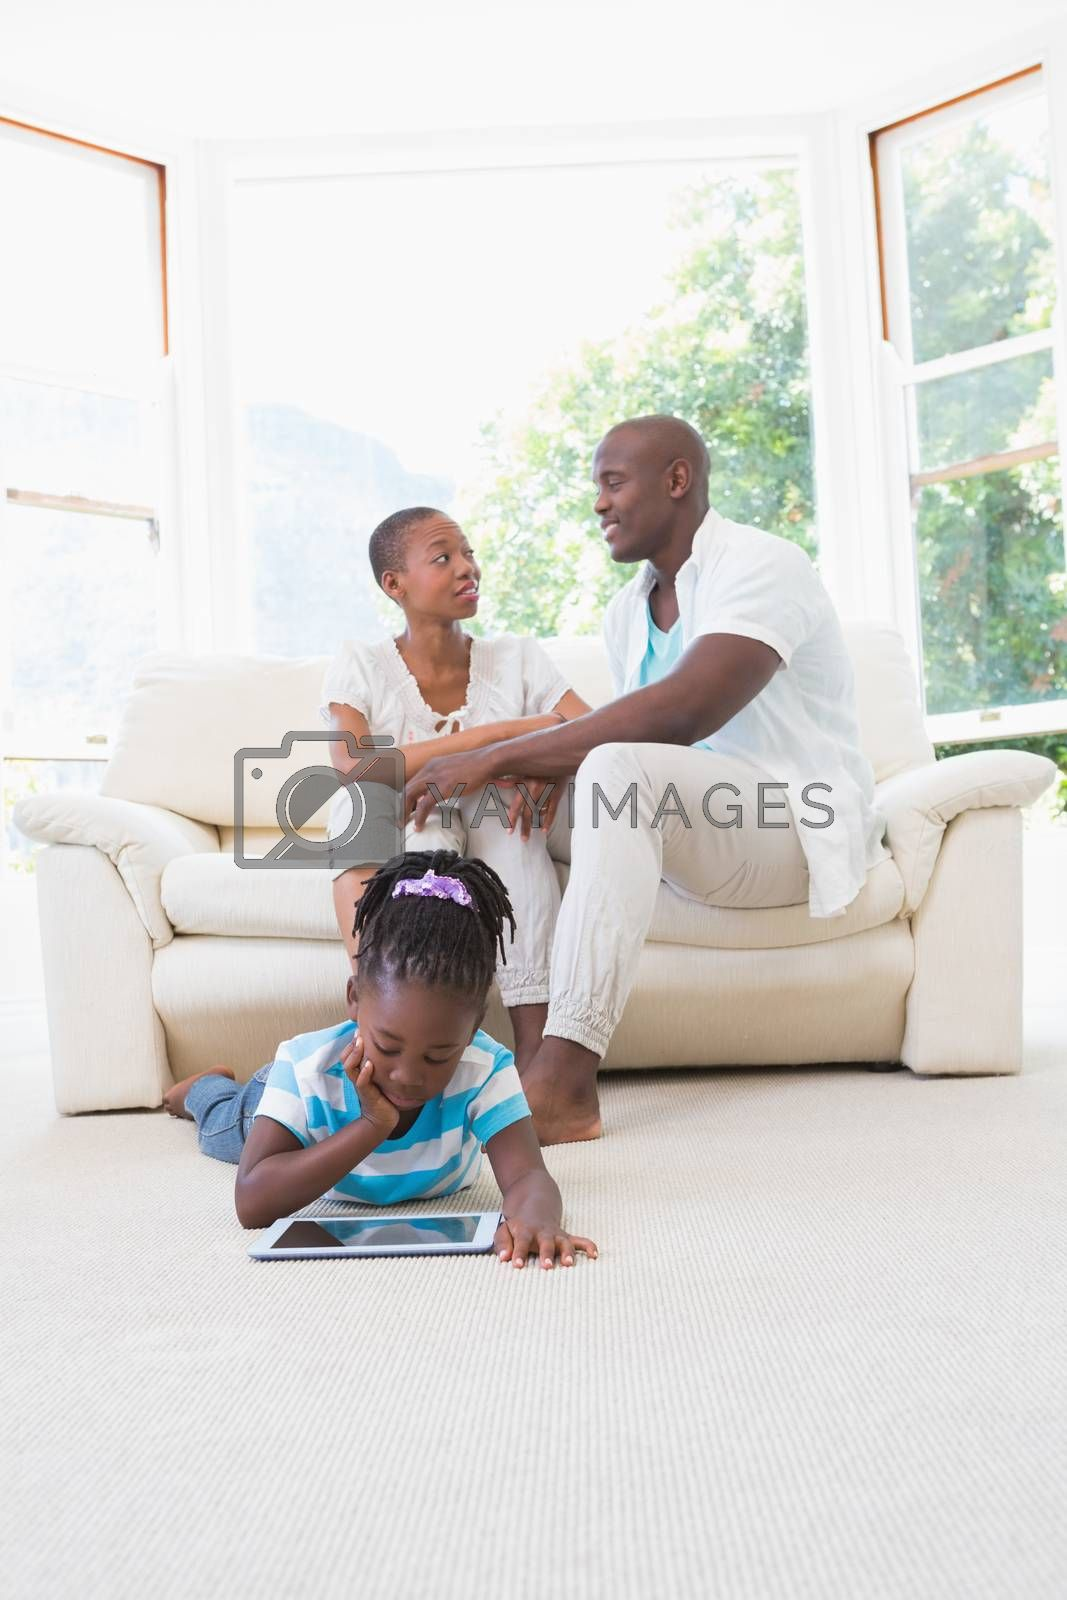 Royalty free image of Pretty couple sitting on couch and their daughter using digital tablet  by Wavebreakmedia